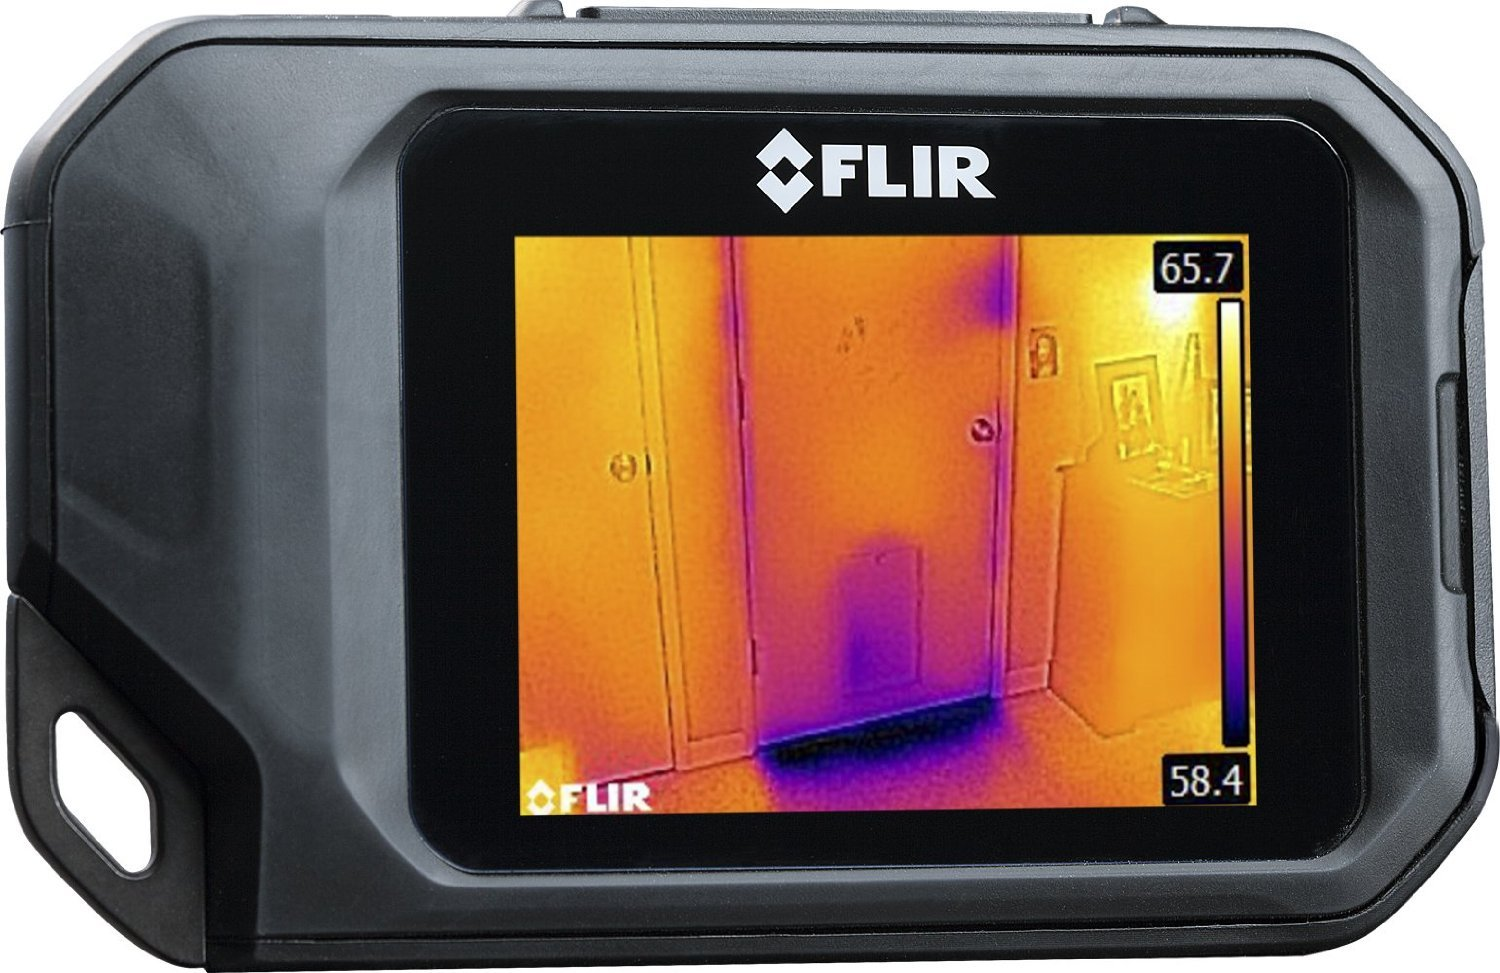 thermal imaging camera for home performance measurements